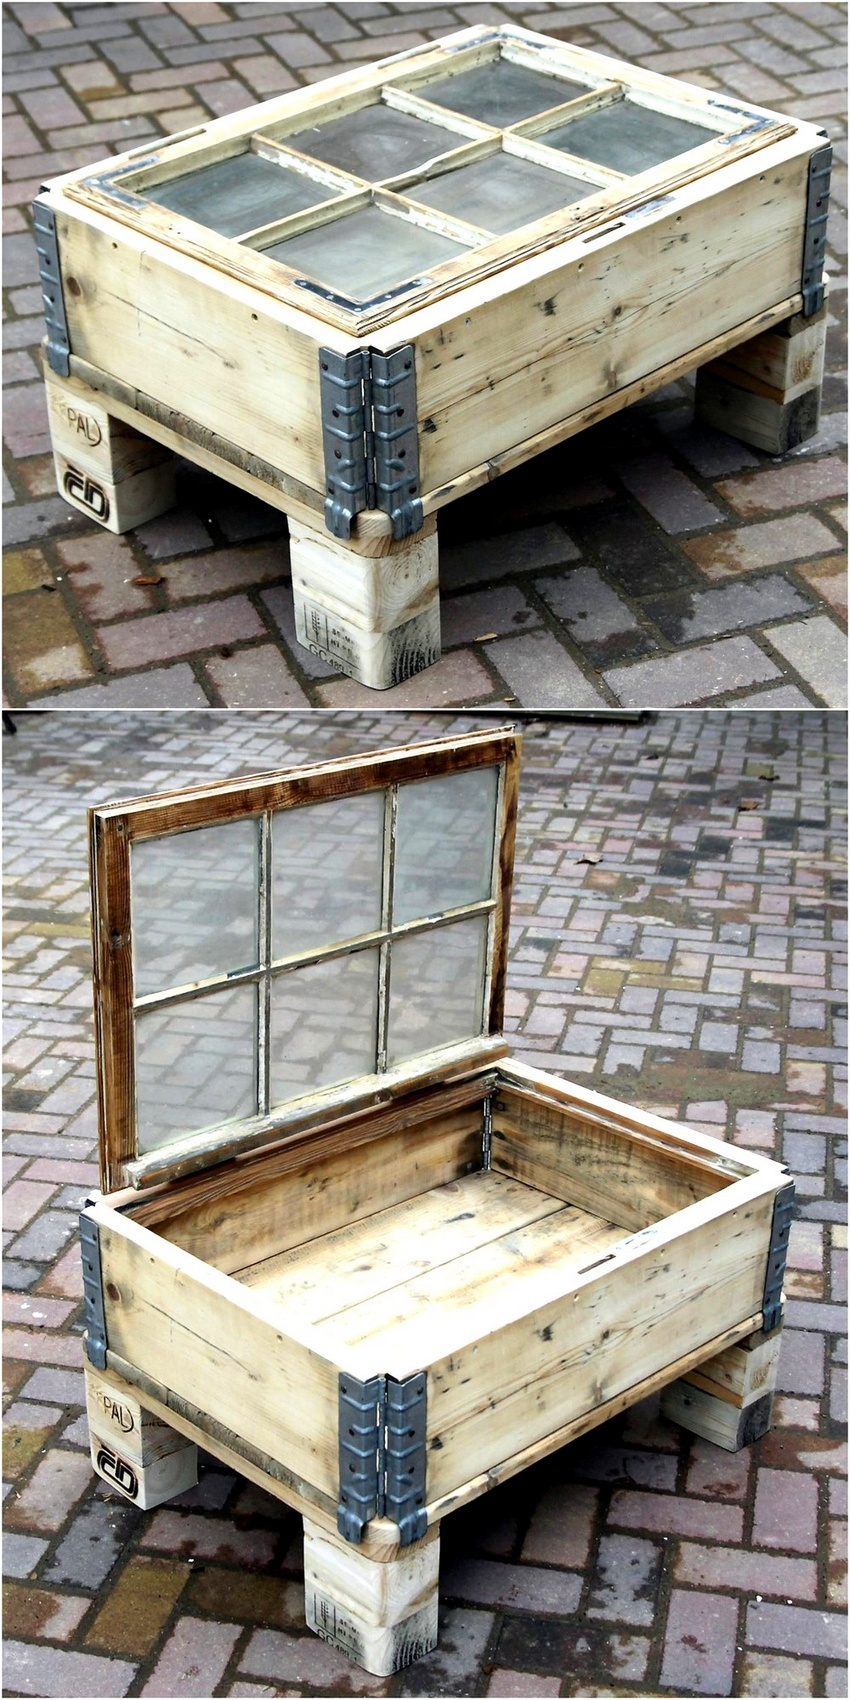 Creative Pallet Recycling Ideas by Lucie's Palettenmöbel ... on Pallets Design Ideas  id=51381